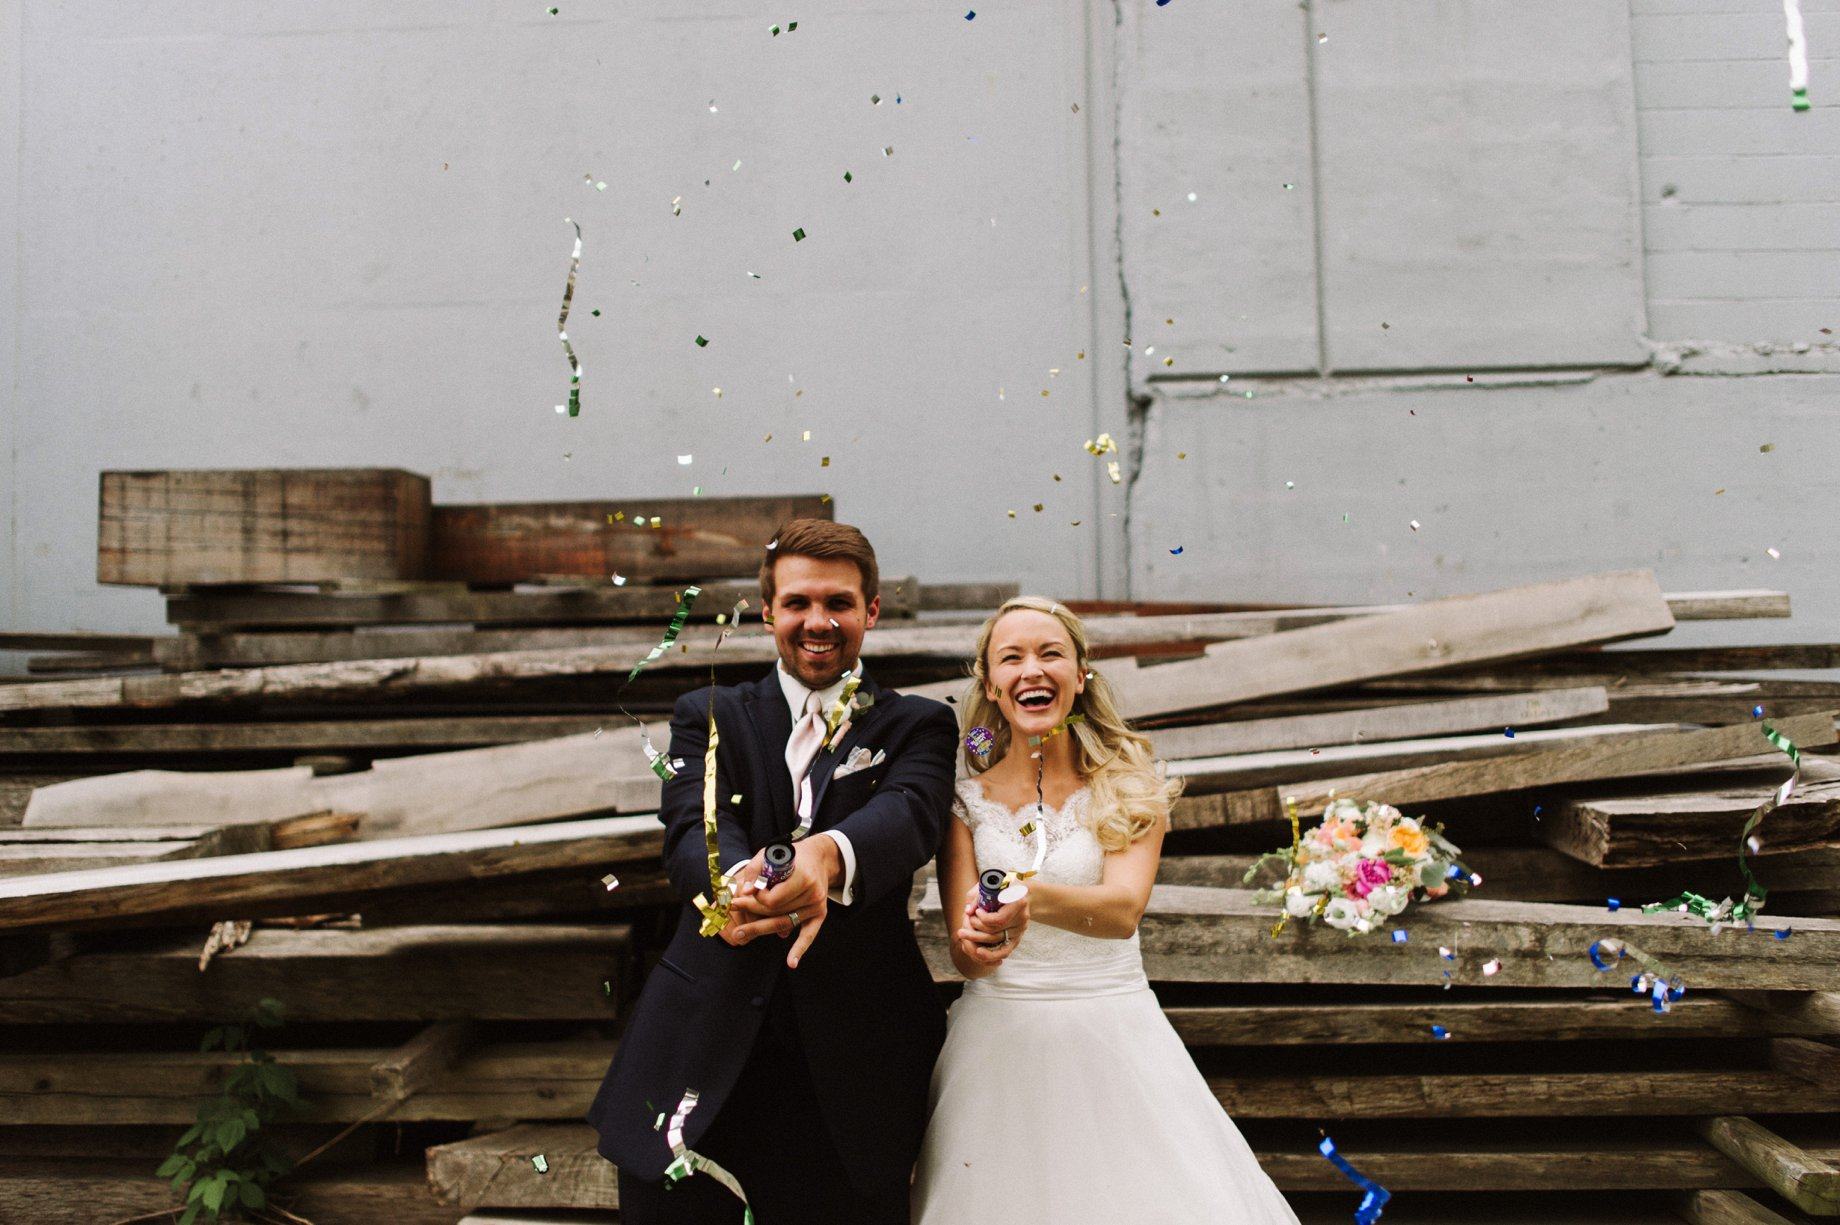 bride and groom with confetti poppers